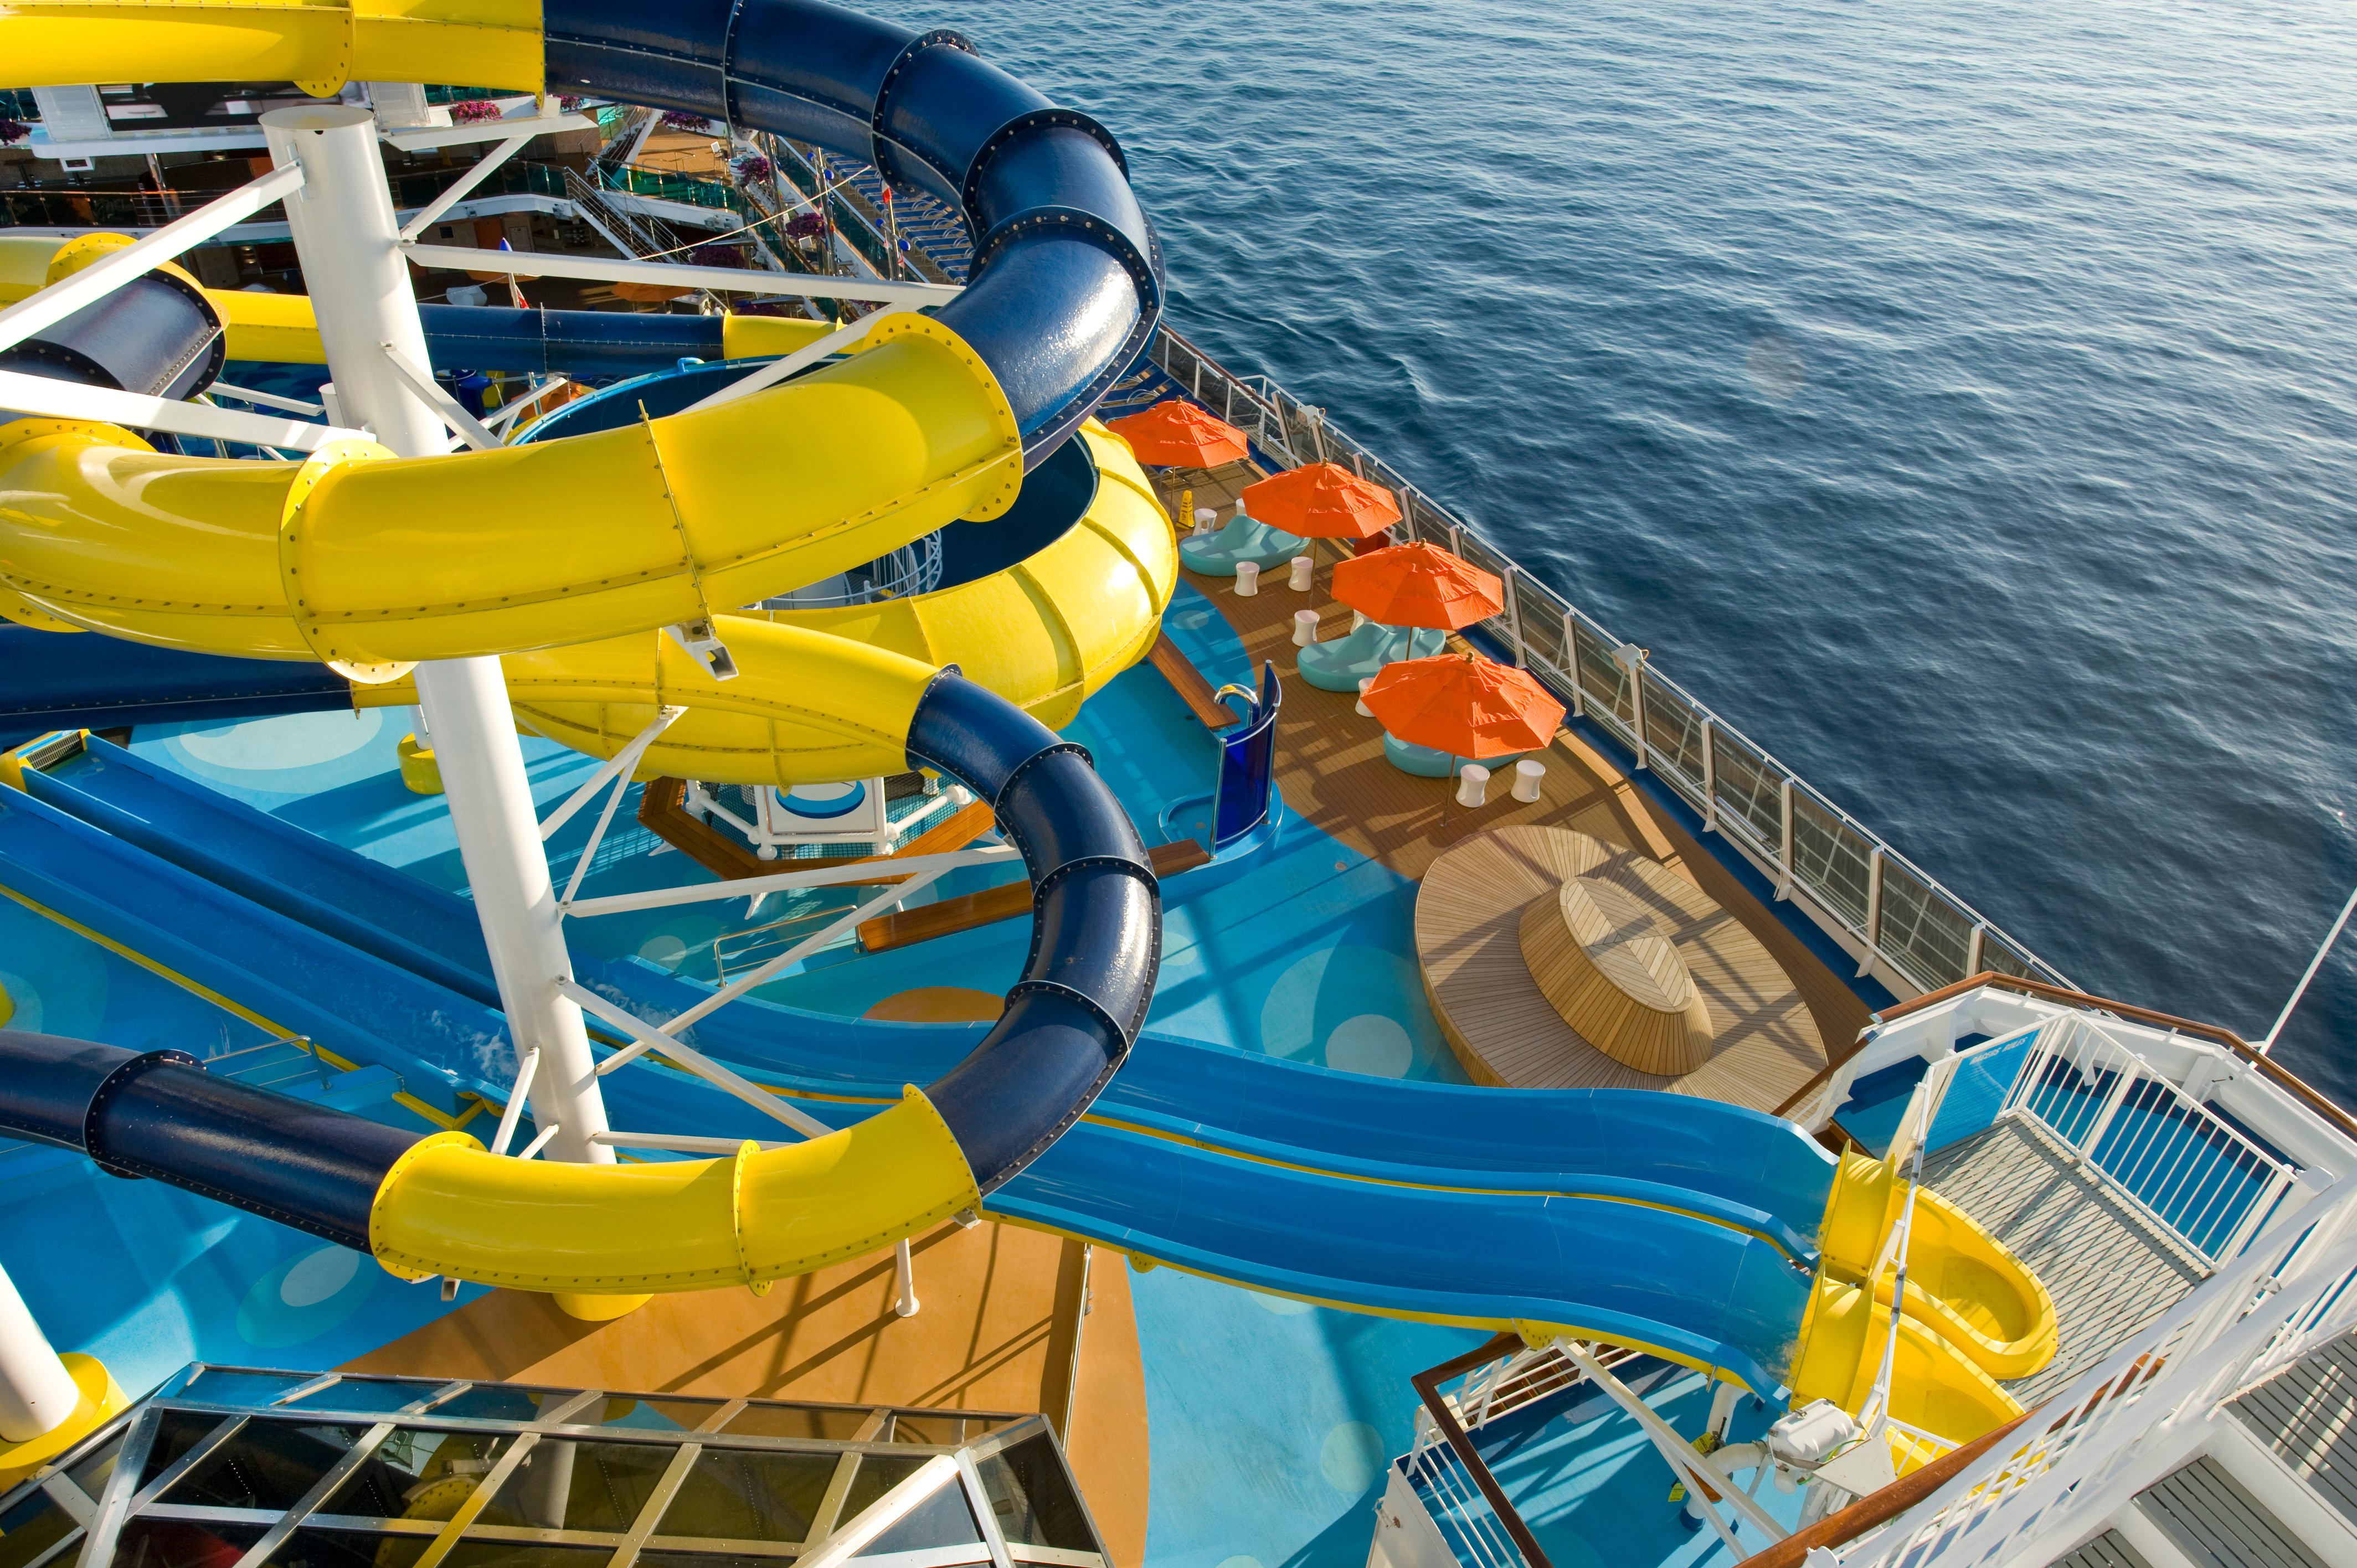 Carnival Dream Images